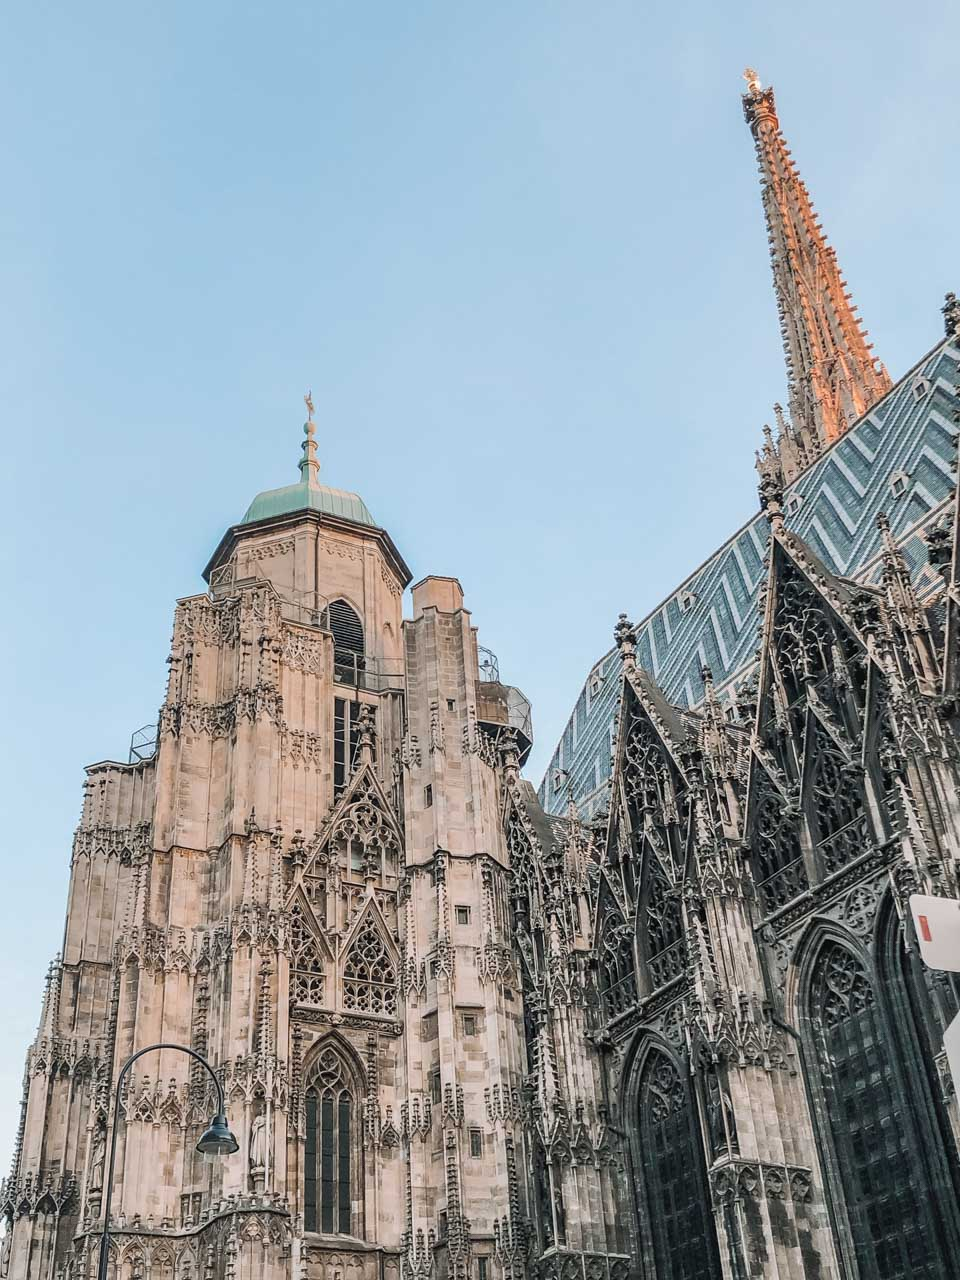 The outside of Stephansdom (St. Stephen's Cathedral) in Vienna, Austria